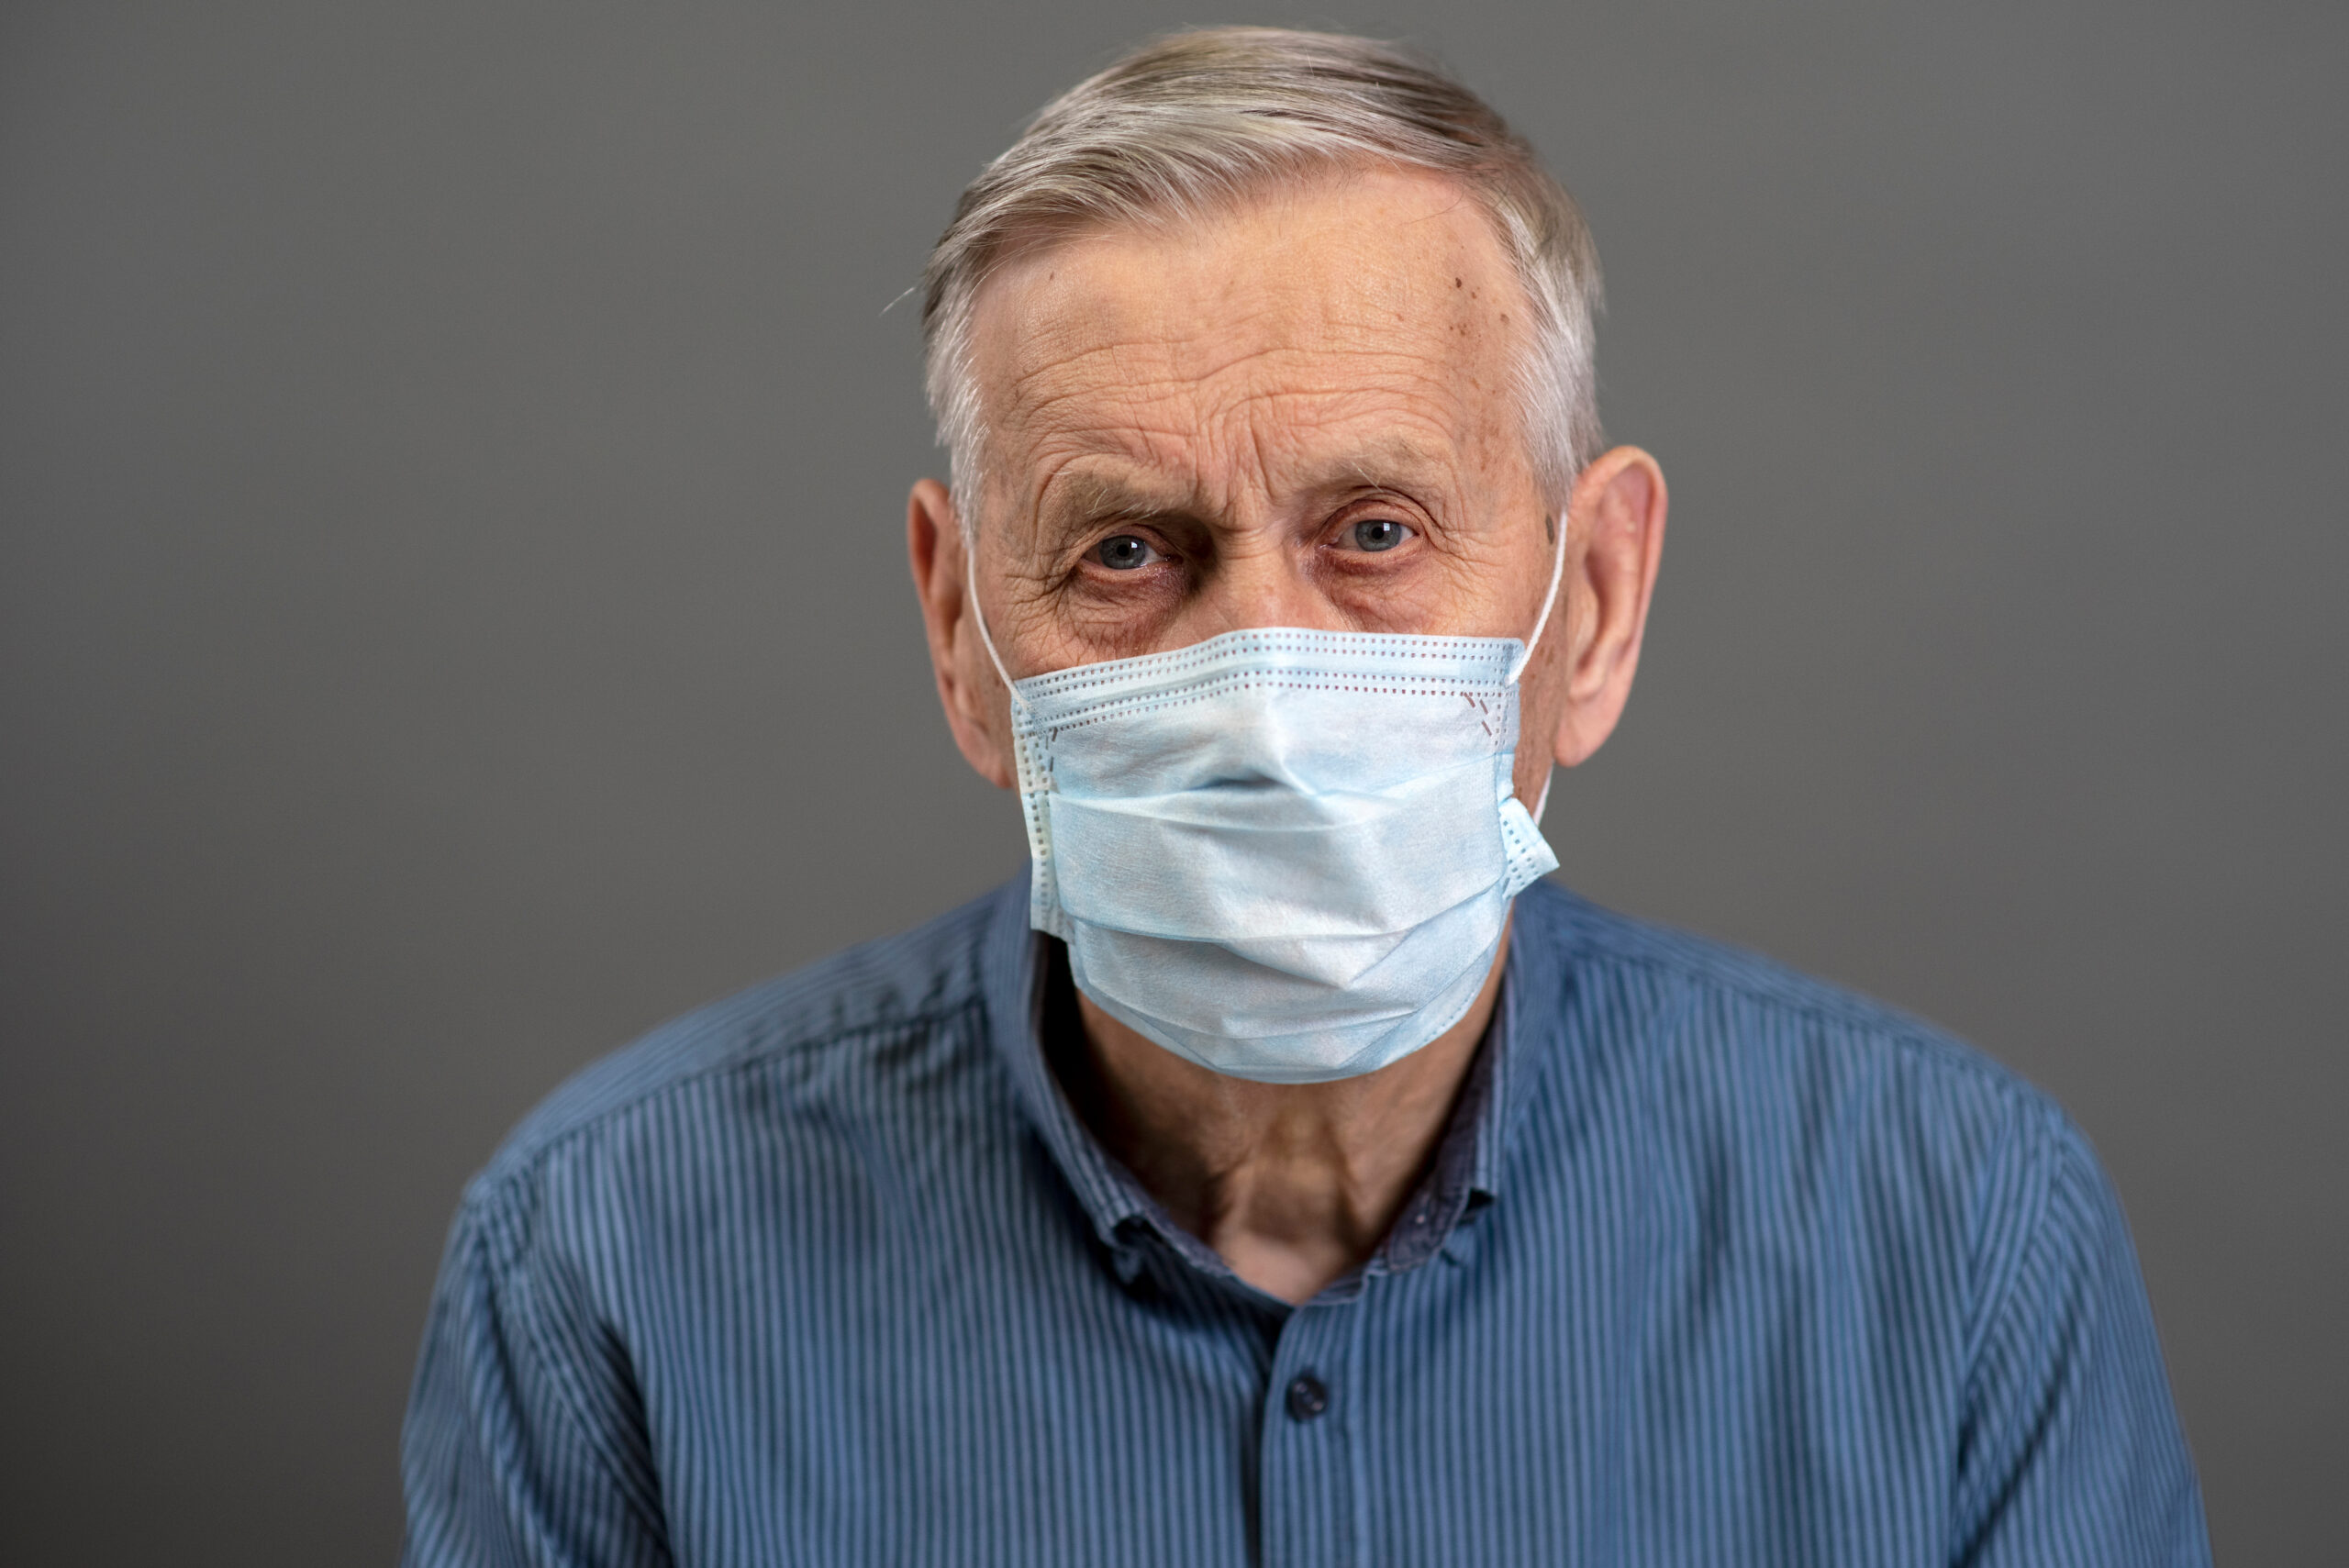 Can wearing a mask for long hours affect your health?